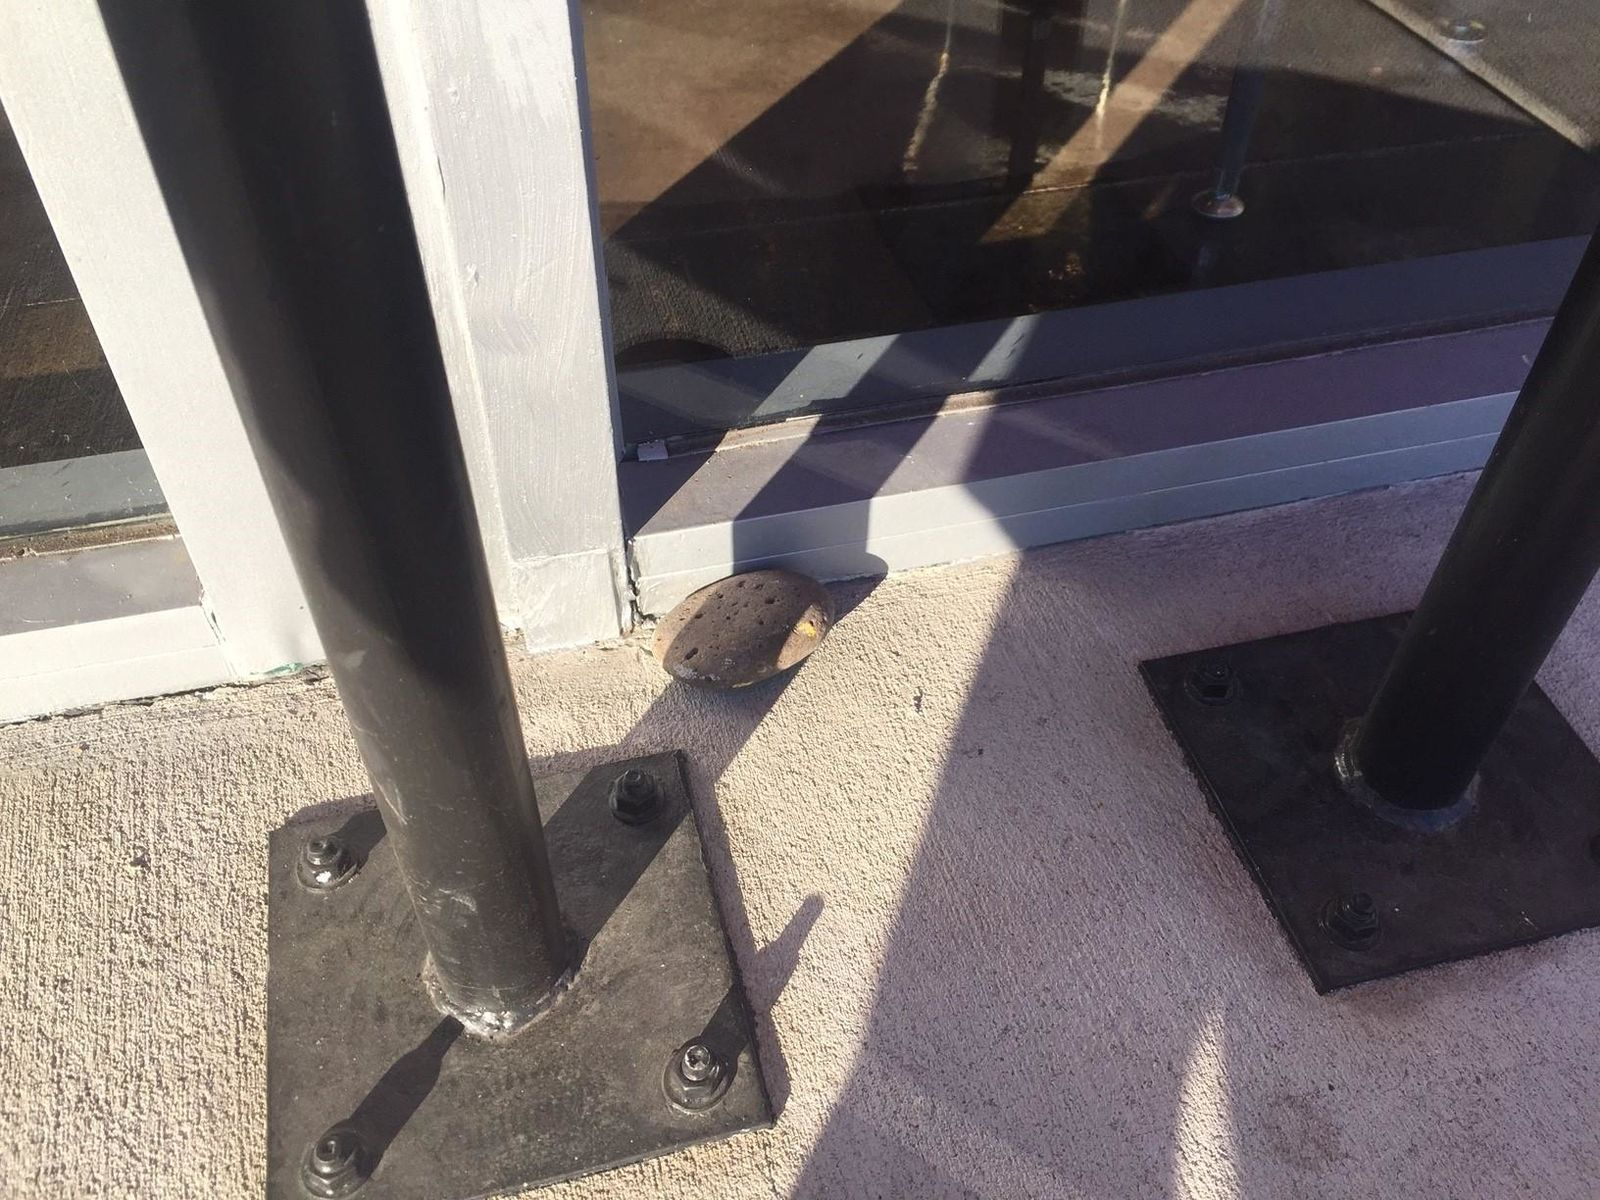 Chad West, co-president of Westraunt Concepts, said the man threw a rock and shattered the front window. The window has since been repaired. (Courtesy Westraunt Concepts)